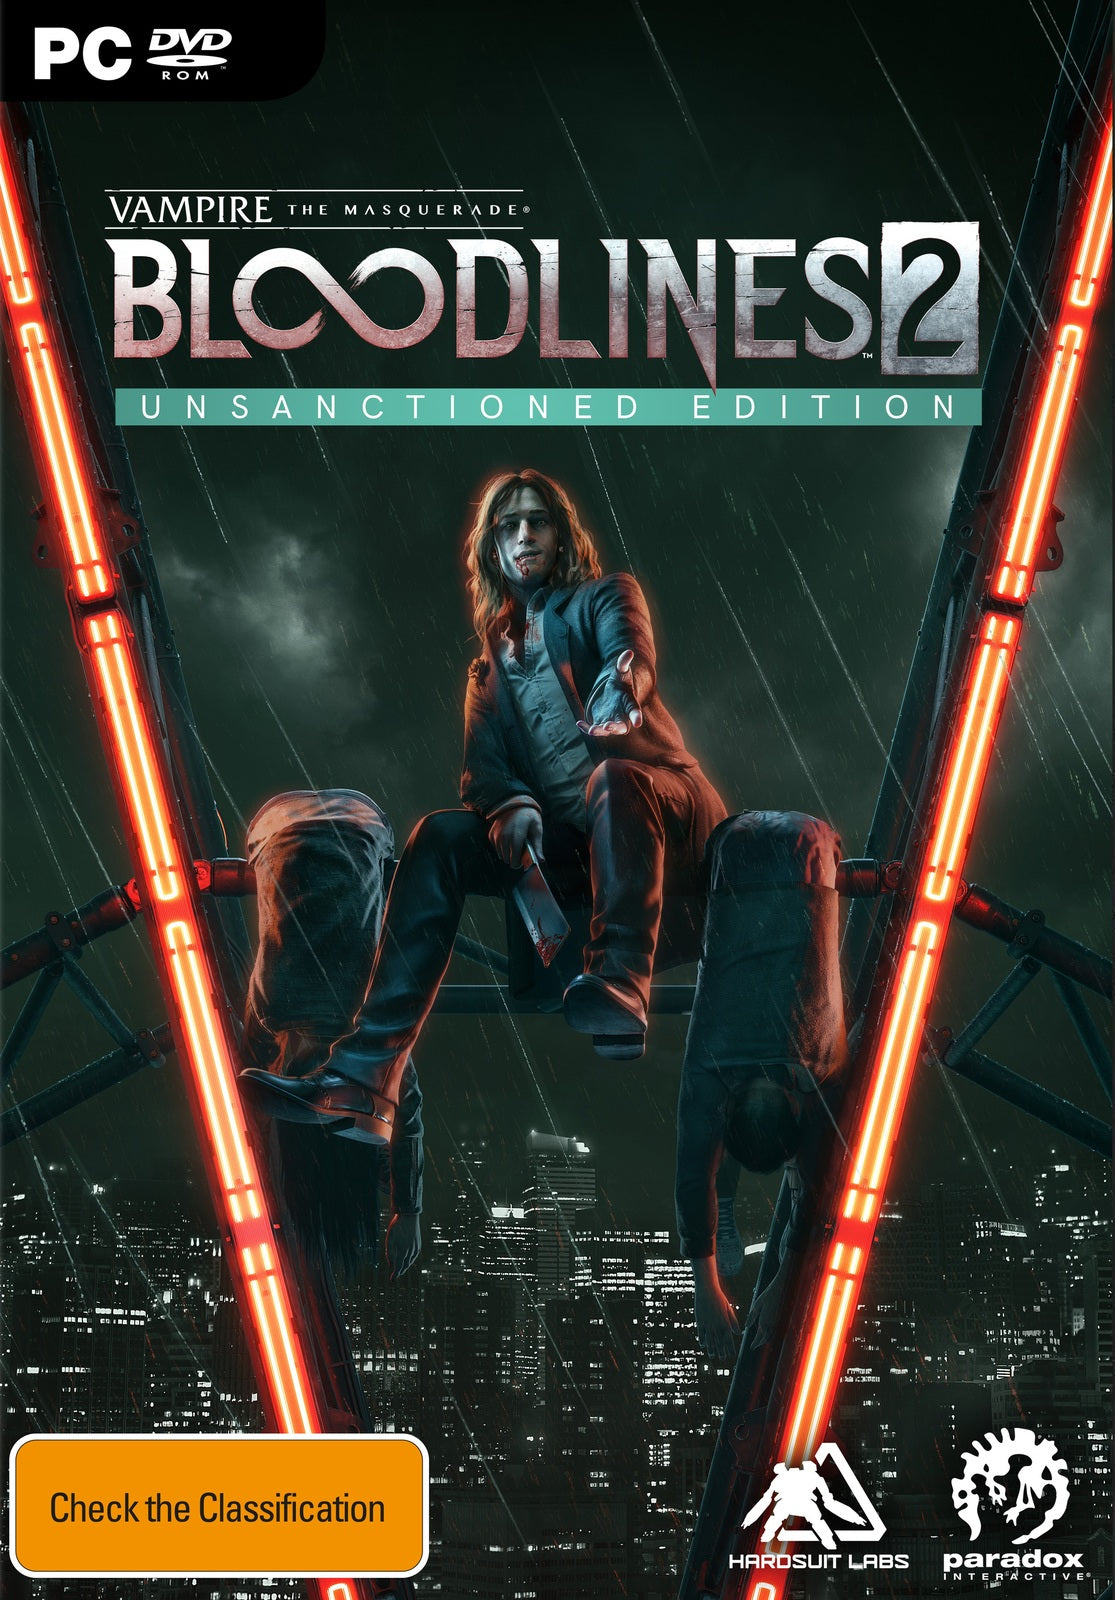 Vampire: The Masquerade – Bloodlines 2 Unsanctioned Edition - PC Games